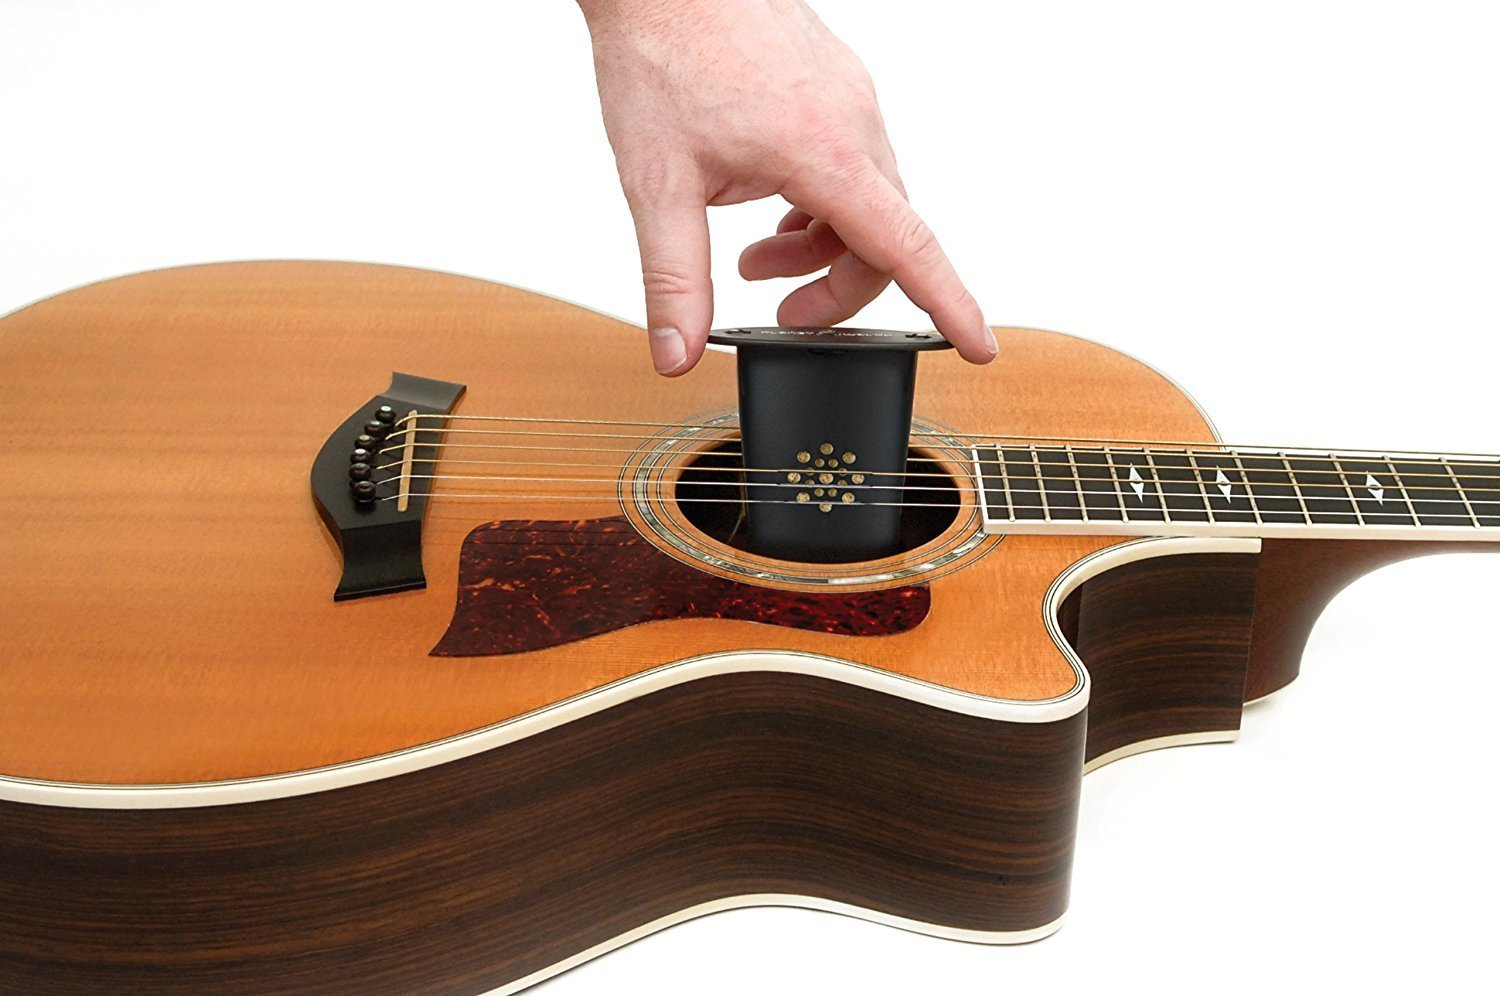 Place in Guitar Sound Hole